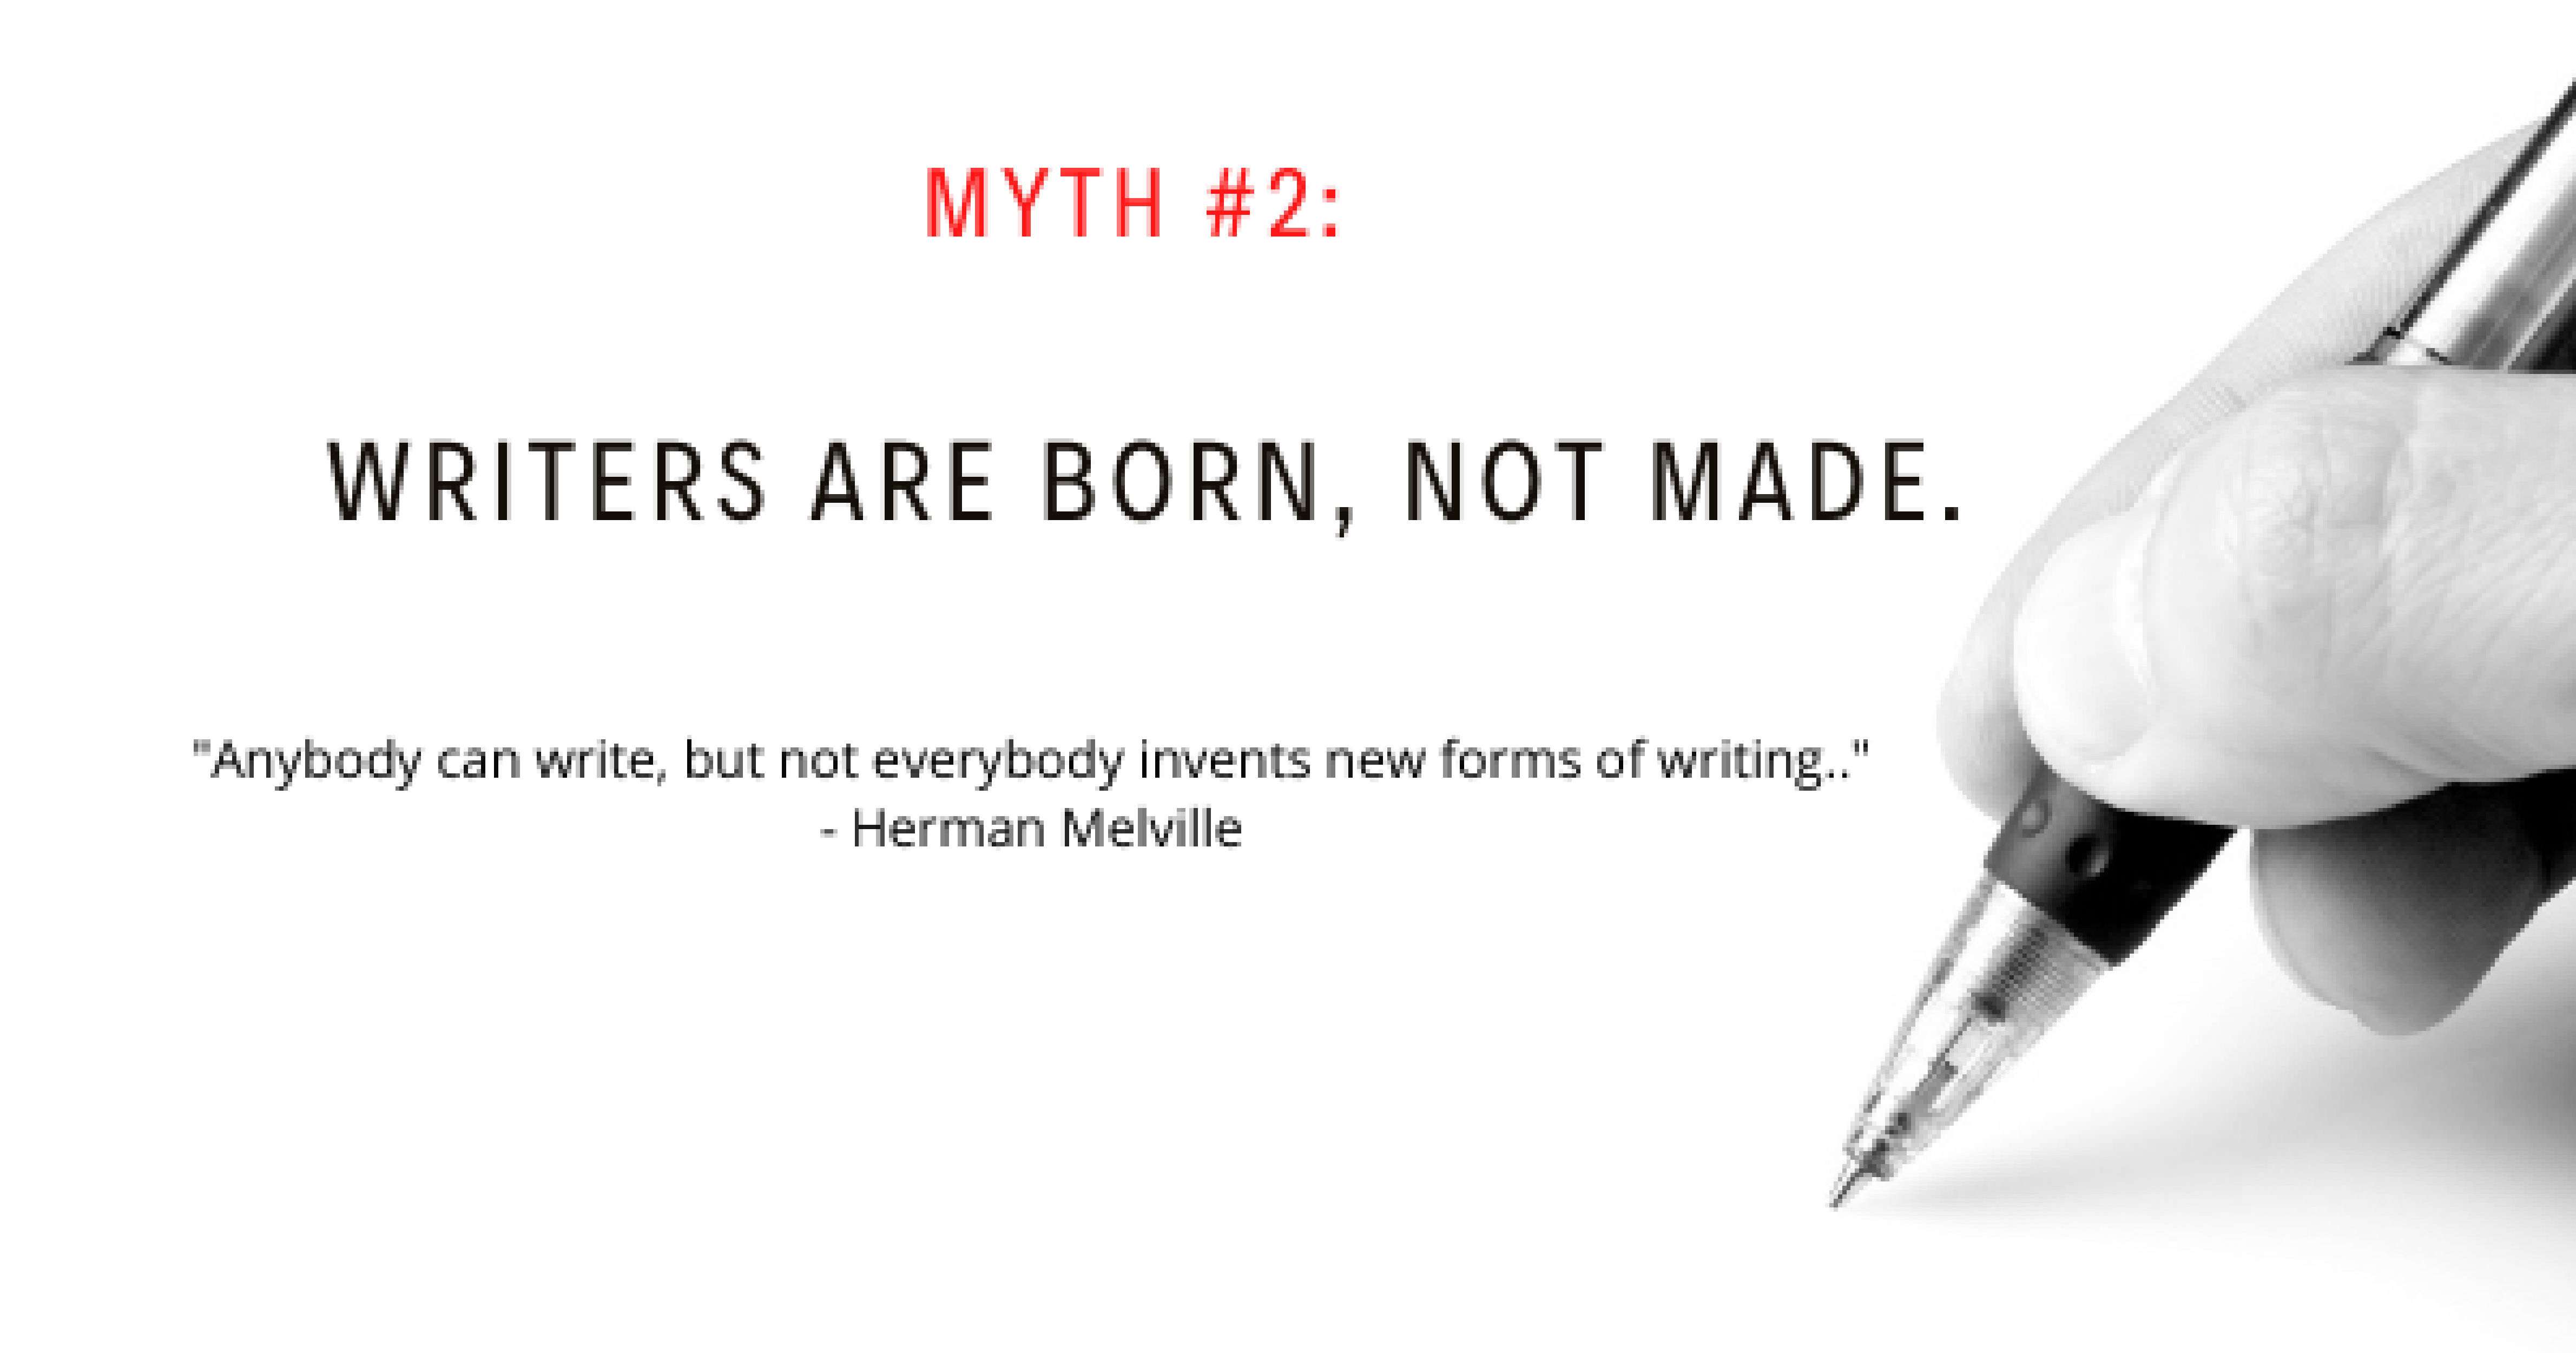 Writing Myth #2